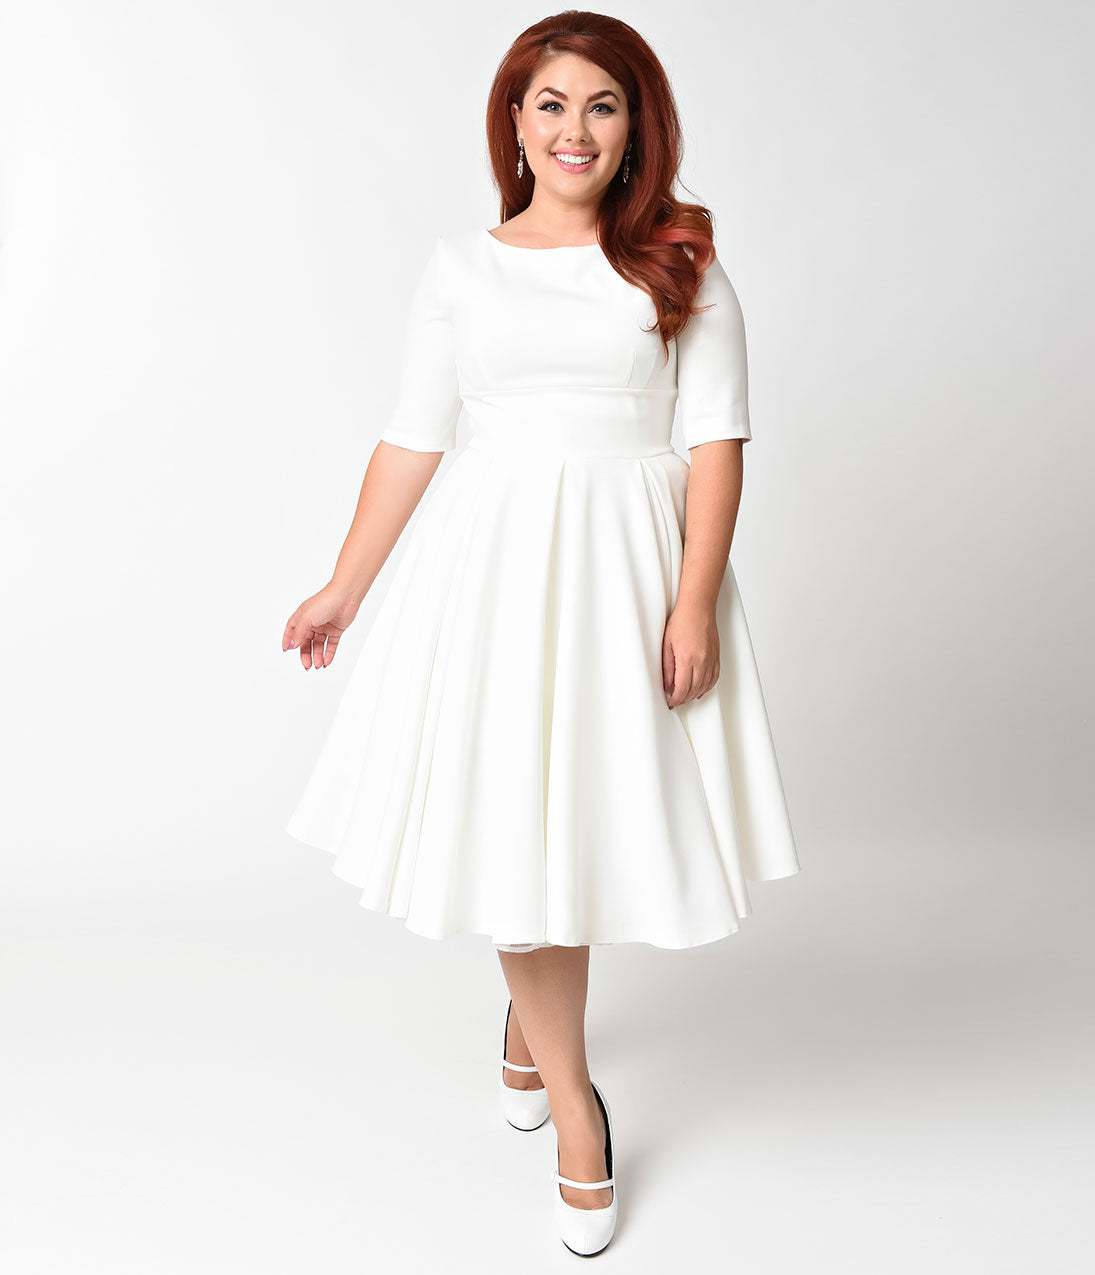 50s Wedding Dress, 1950s Style Wedding Dresses, Rockabilly Weddings The Pretty Dress Company Plus Size Ivory Crepe Sleeved Hepburn Swing Dress $172.00 AT vintagedancer.com